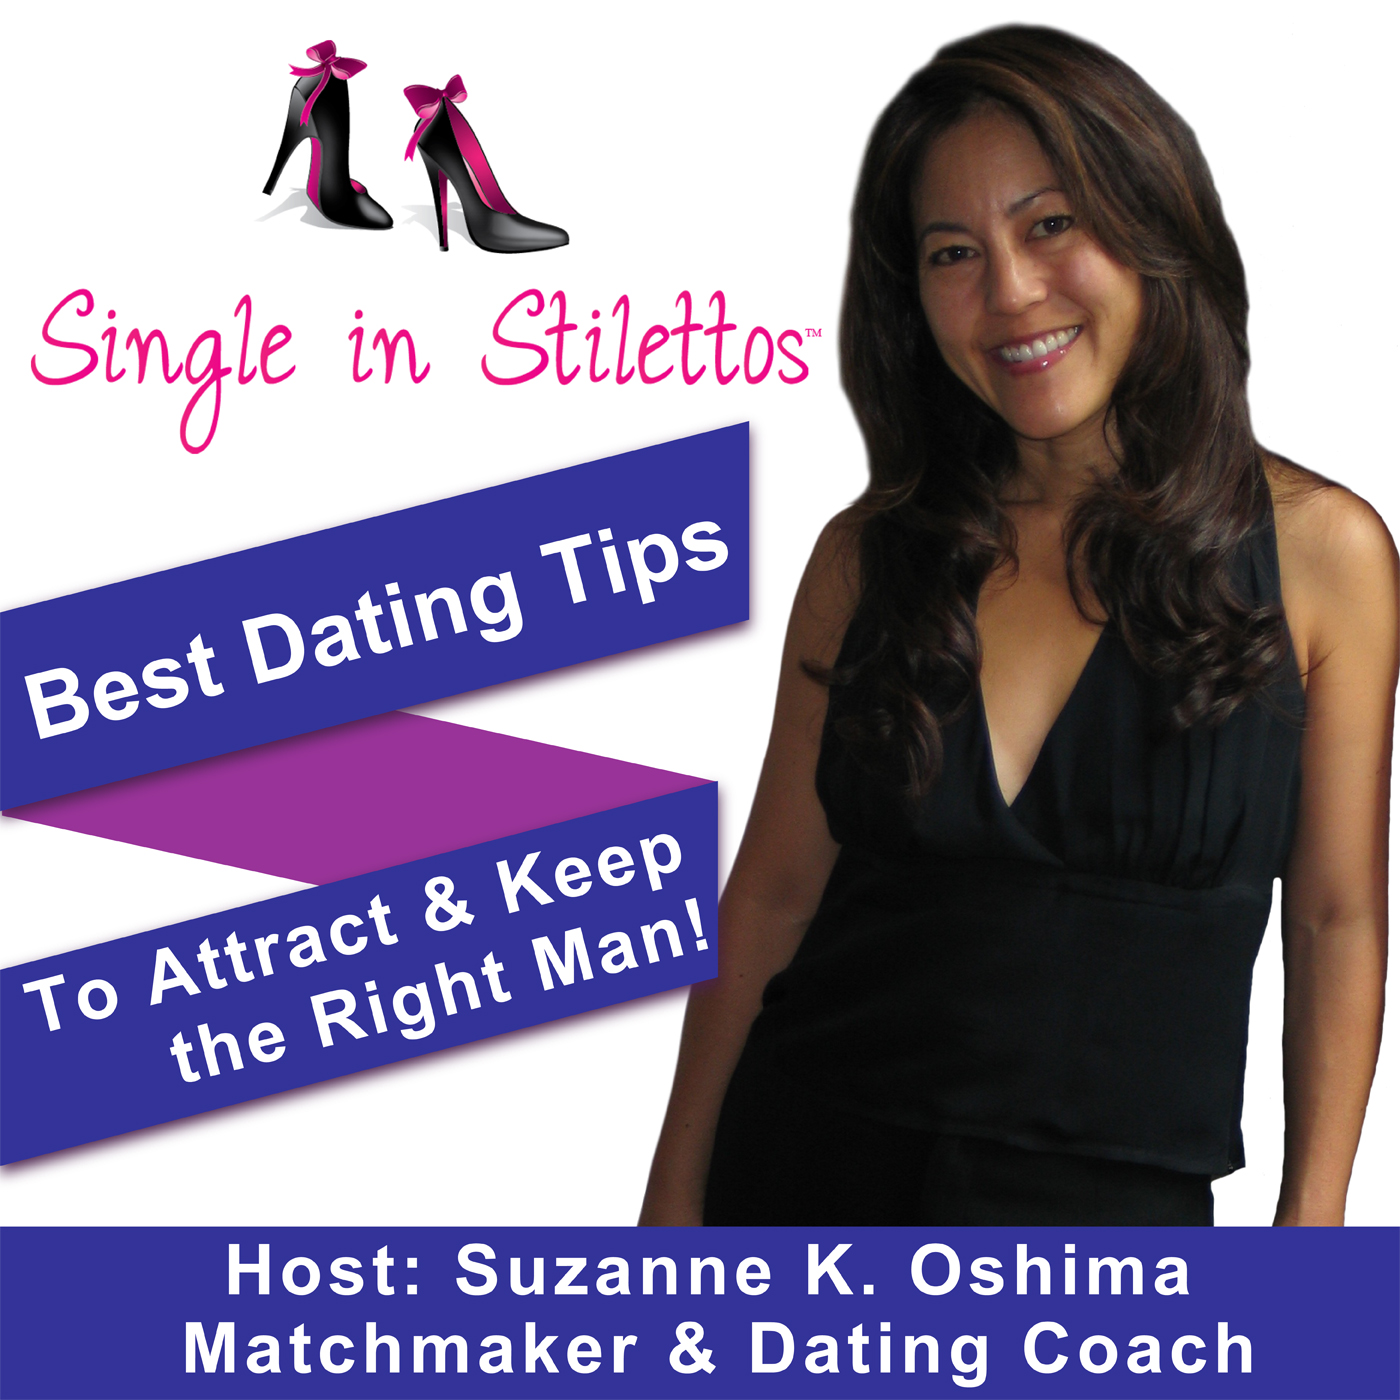 dating tips for girlfriend Flirting tips for dating when you're on a date, flirting is a delightful way to make your date — and you, for that matter — feel irresistible and tingly all over.